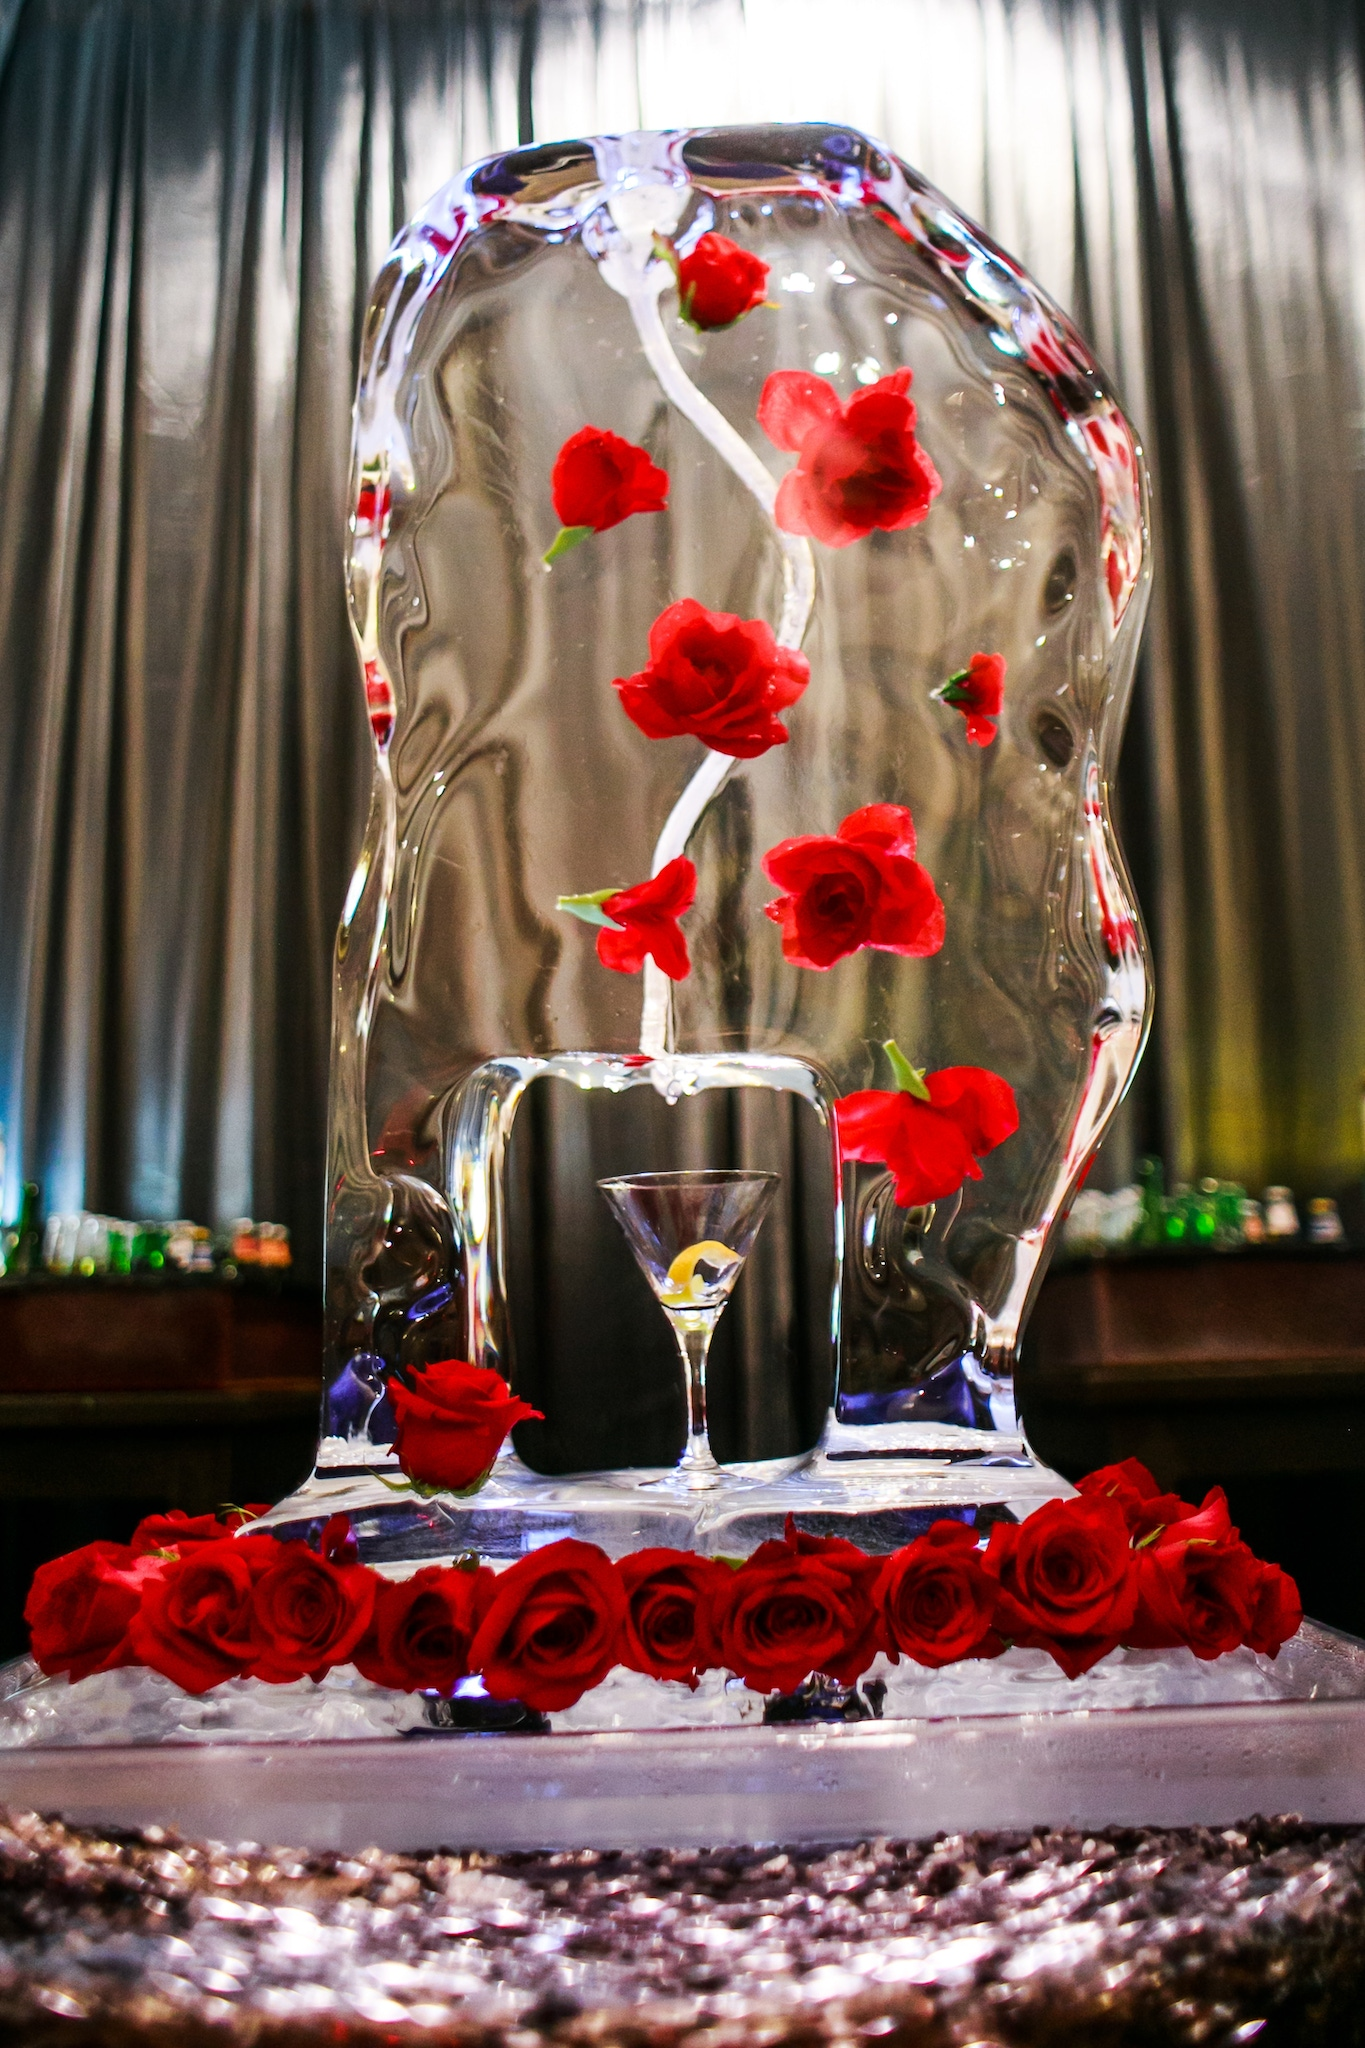 Ice sculpture cocktail cooler